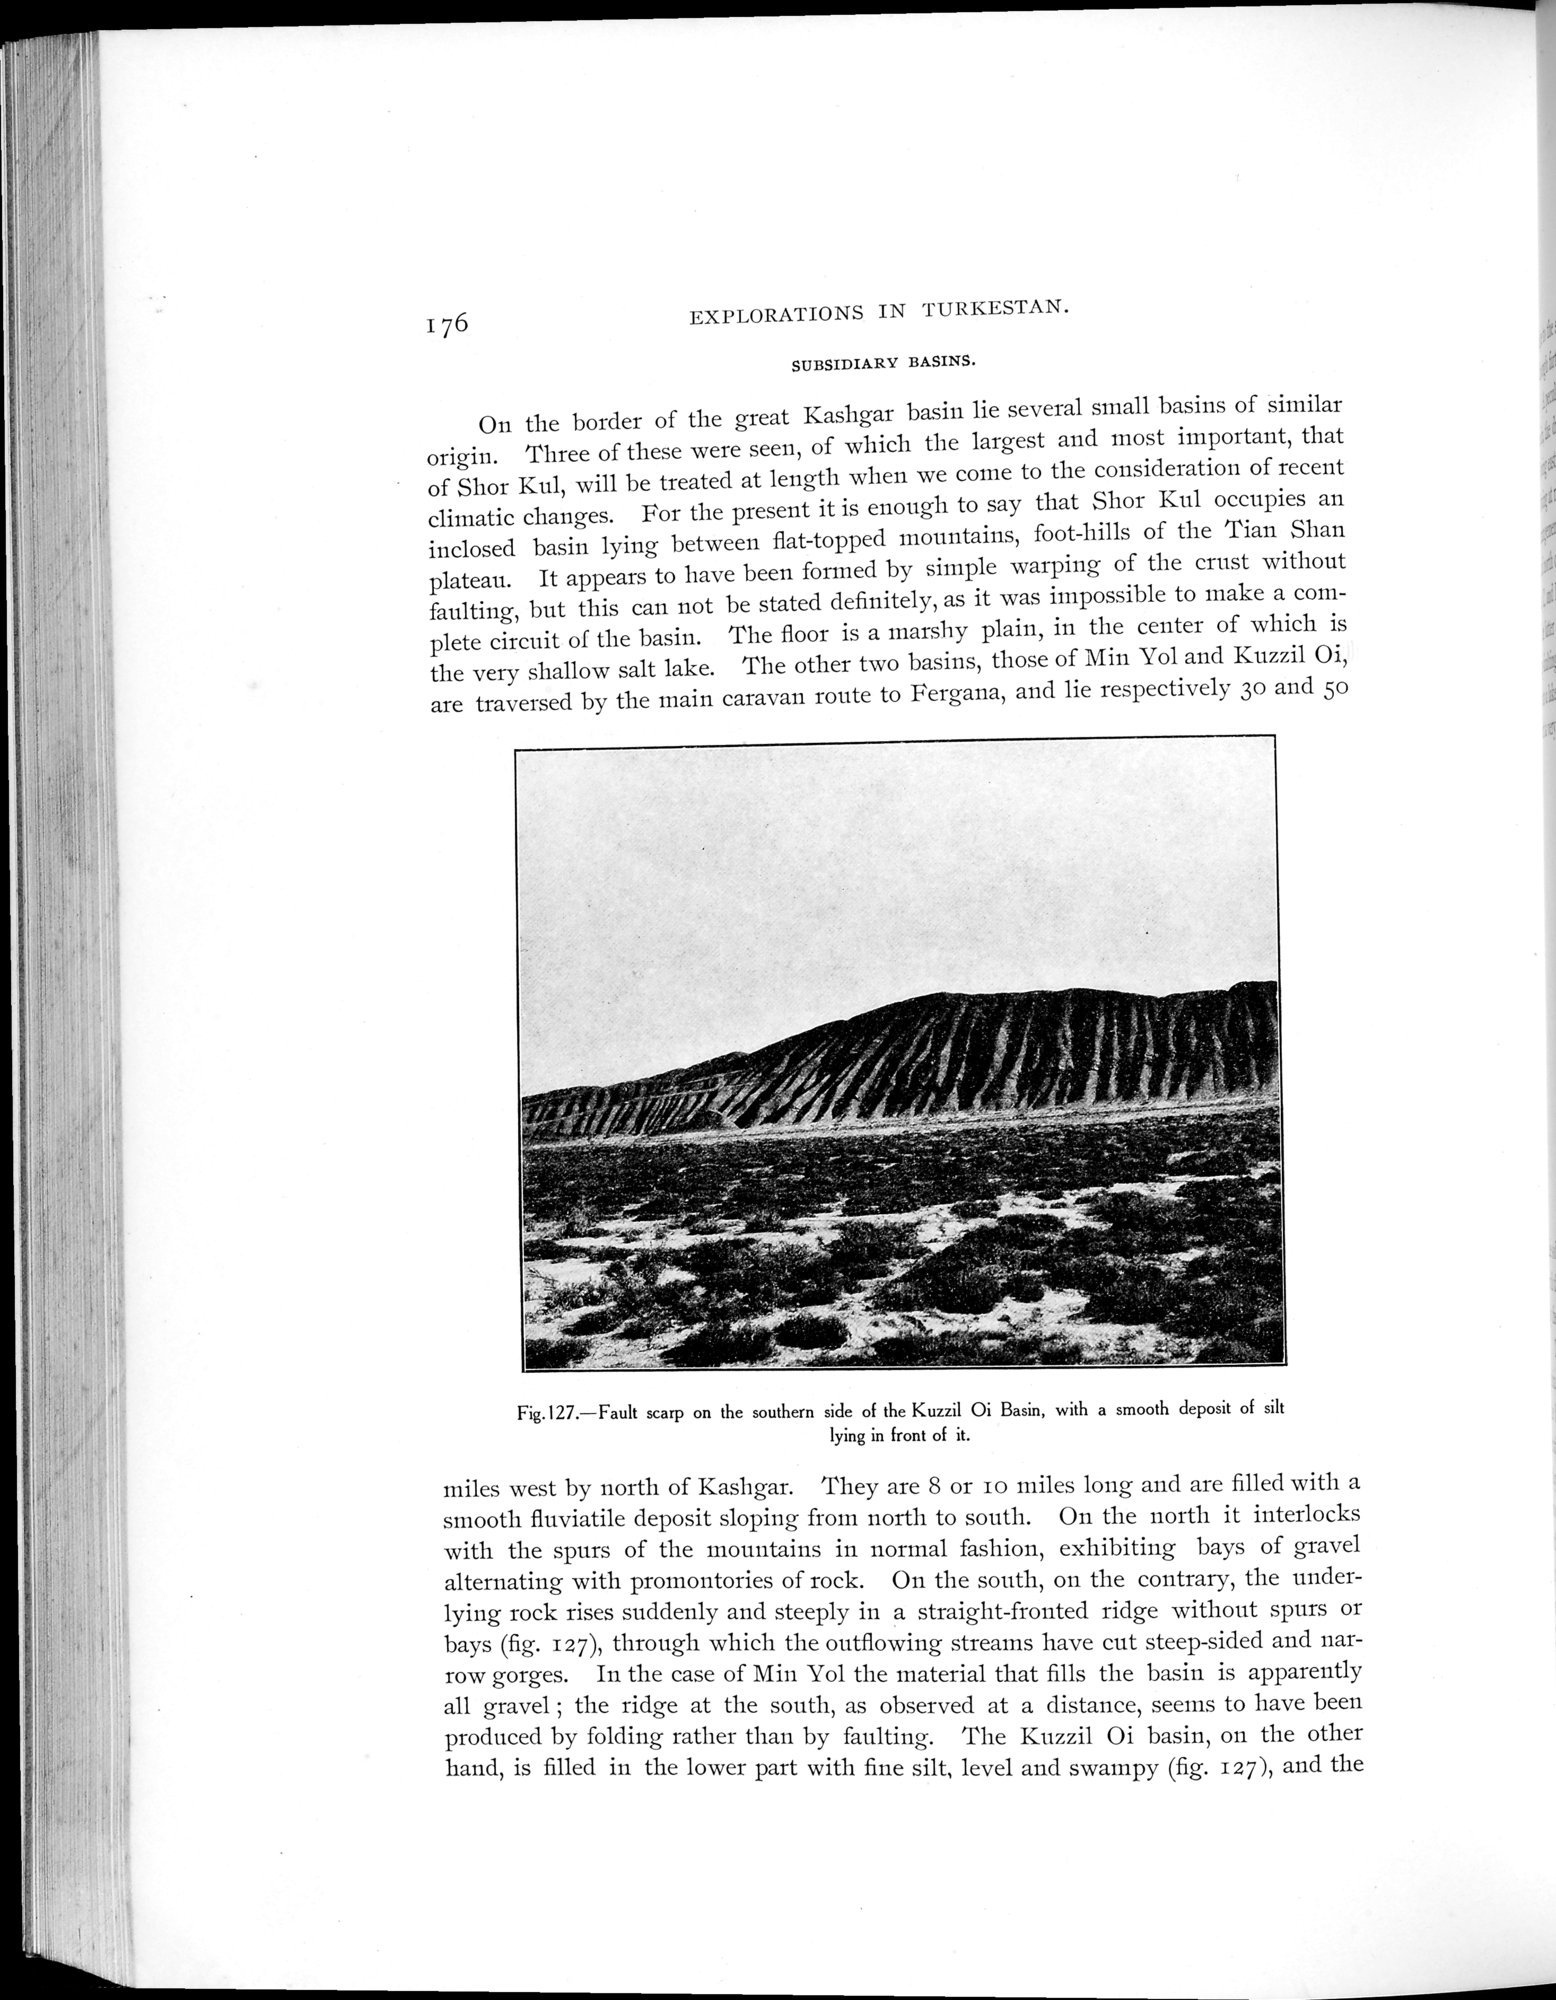 Explorations in Turkestan 1903 : vol.1 / Page 206 (Grayscale High Resolution Image)